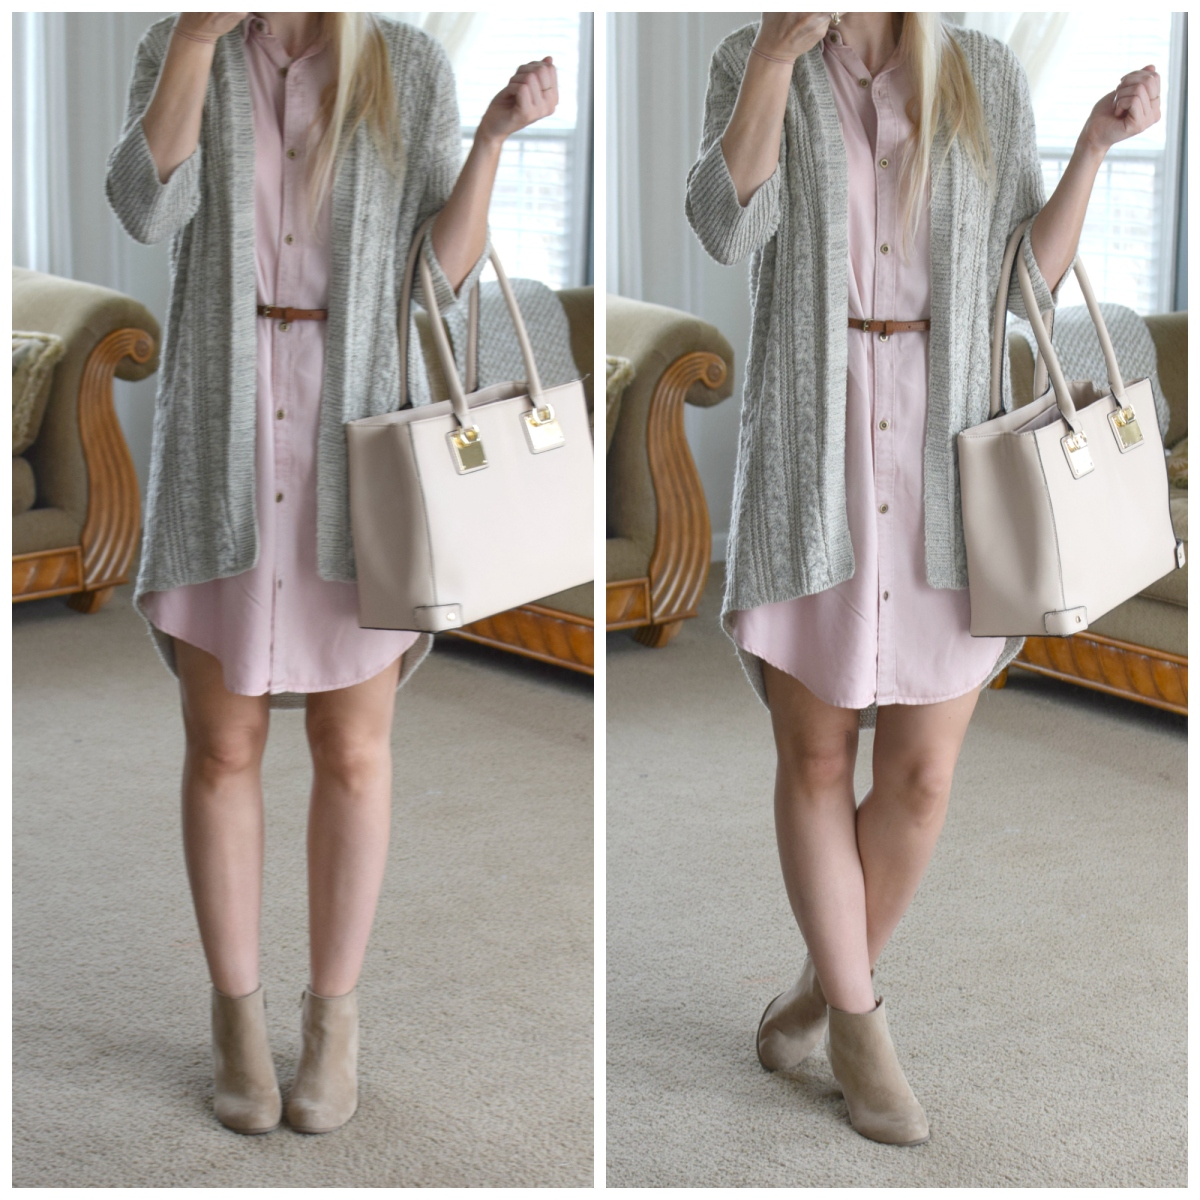 Pink Chambray Dress mixed with beige neutrals |www.pearlsandsportsbras.com|